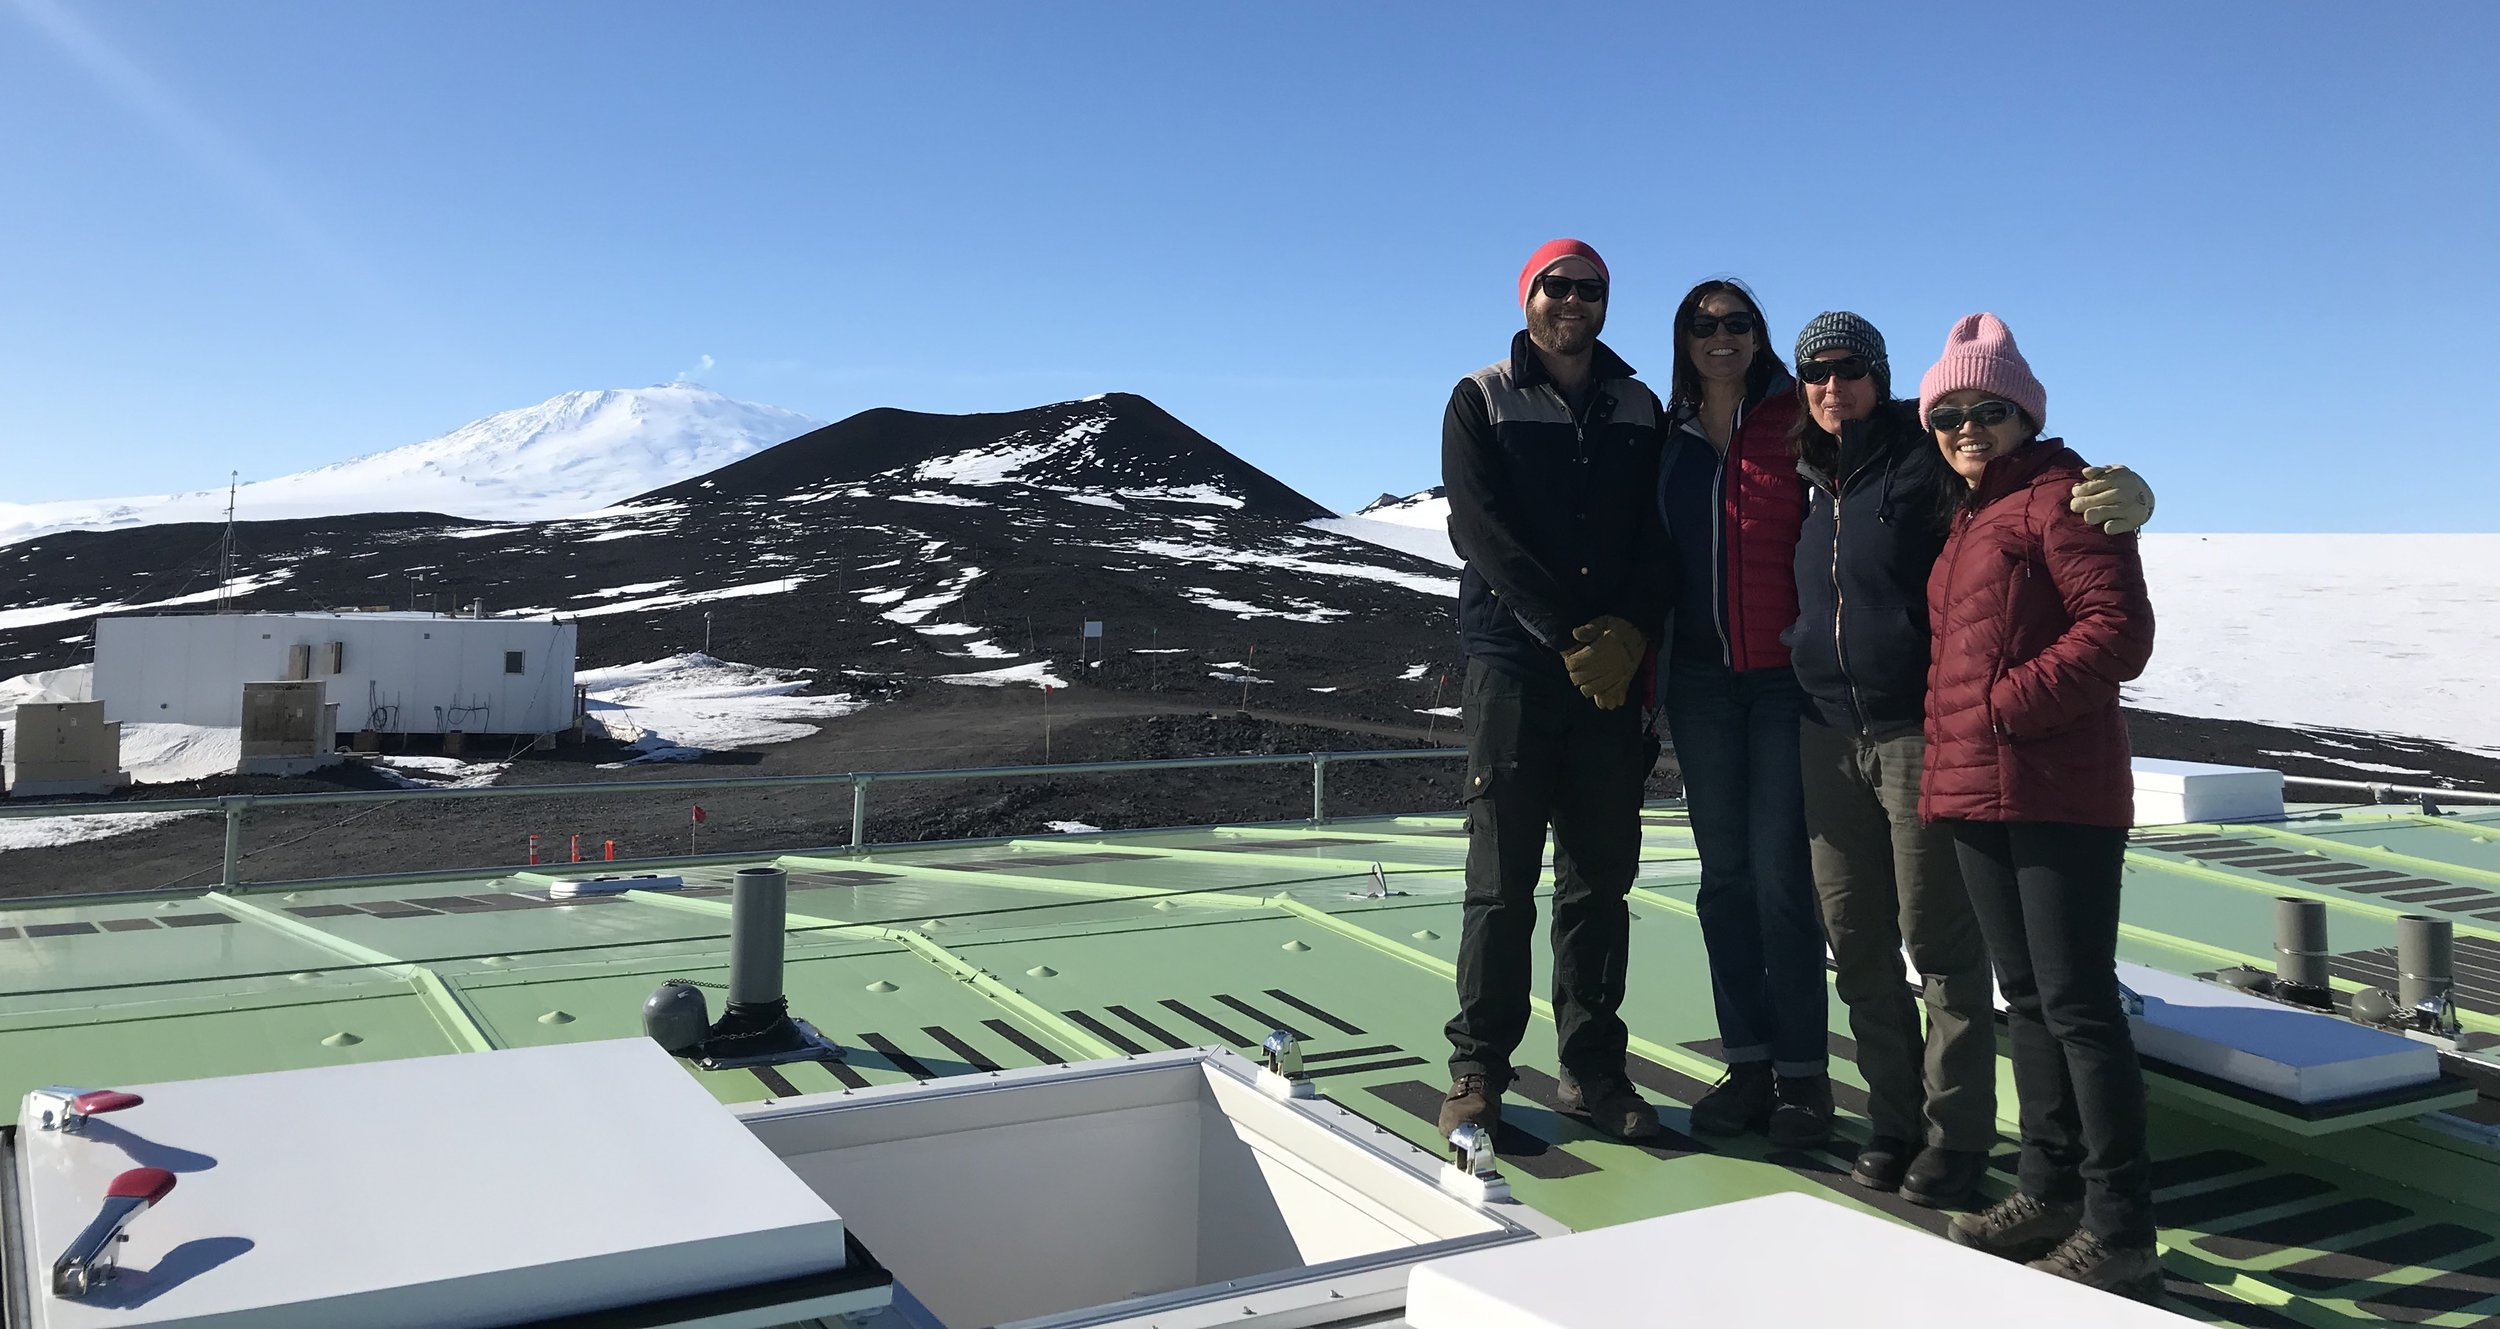 Visiting  Dr. Chu's research station  at Arrival Heights, Mt. Erebus in the way back.